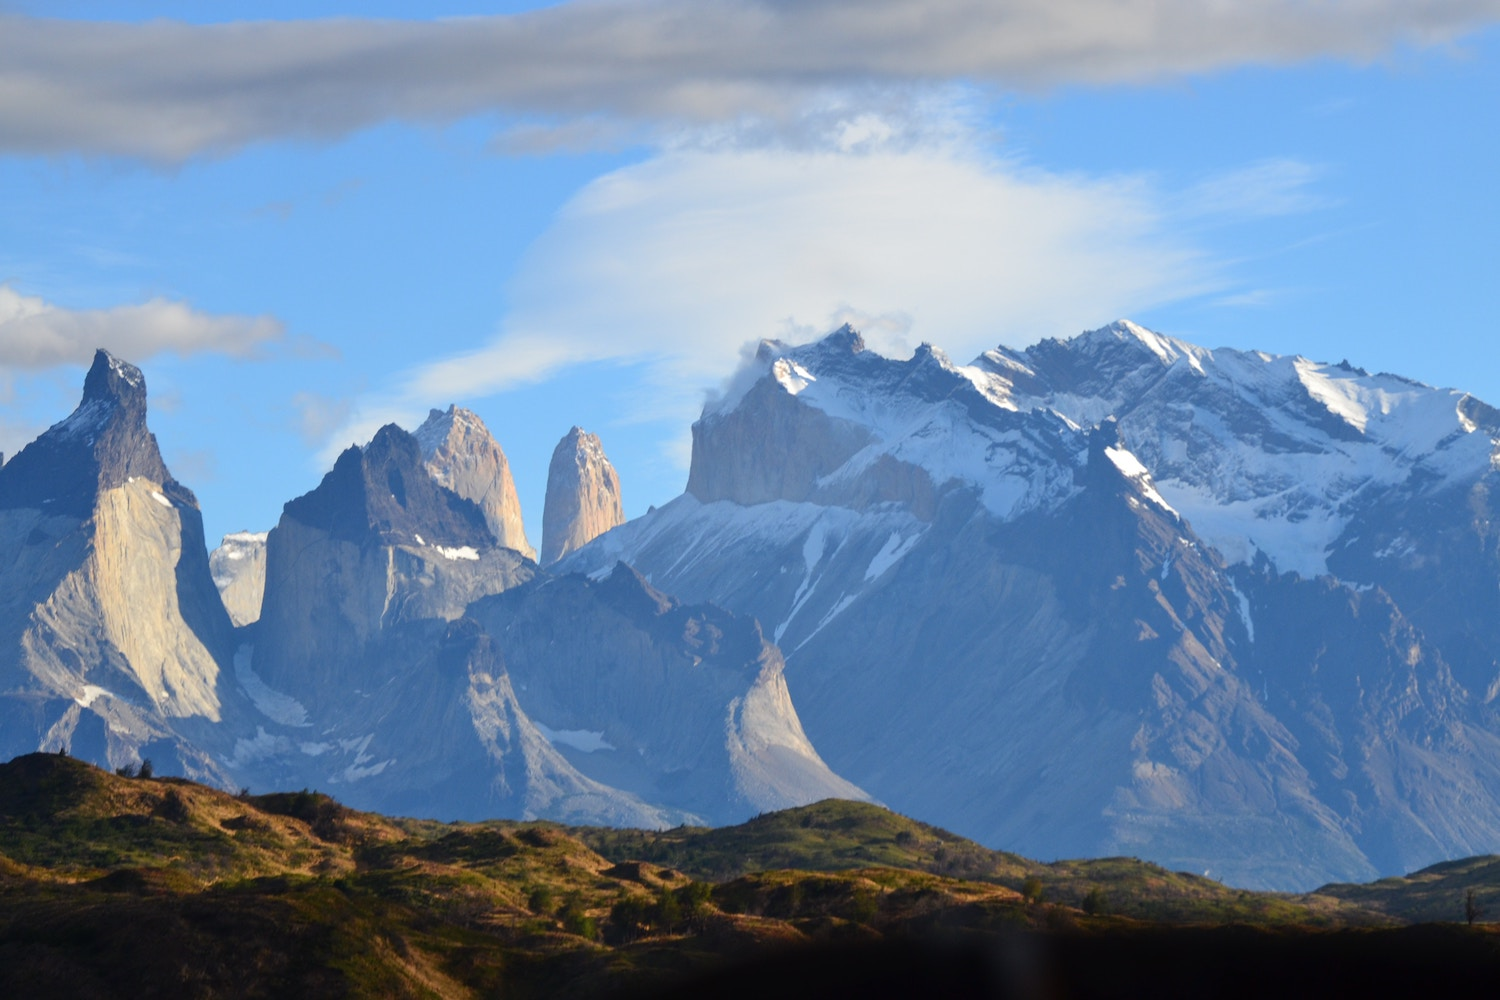 Torres del Paine - From El Calafate, it's just a few hours' drive to Puerto Natales, the gateway to Chile's Torres del Paine National Park. You've come all this way, so you might as well do the unforgettable O Trek, which covers 130 km over seven days.This is one of our favorite treks for two reasons. First and most obvious, the scenery is why Patagonia is famous. Have you ever seen an ice field up close? Secondly, 7 days in the wilderness isn't as rough as it sounds when your destination each day is a charming refuge with great food and wine, and your mornings start with French Press coffee. Torres del Paine is challenging enough for seasoned hikers, yet comfortable enough for the beginners. Don't miss it.